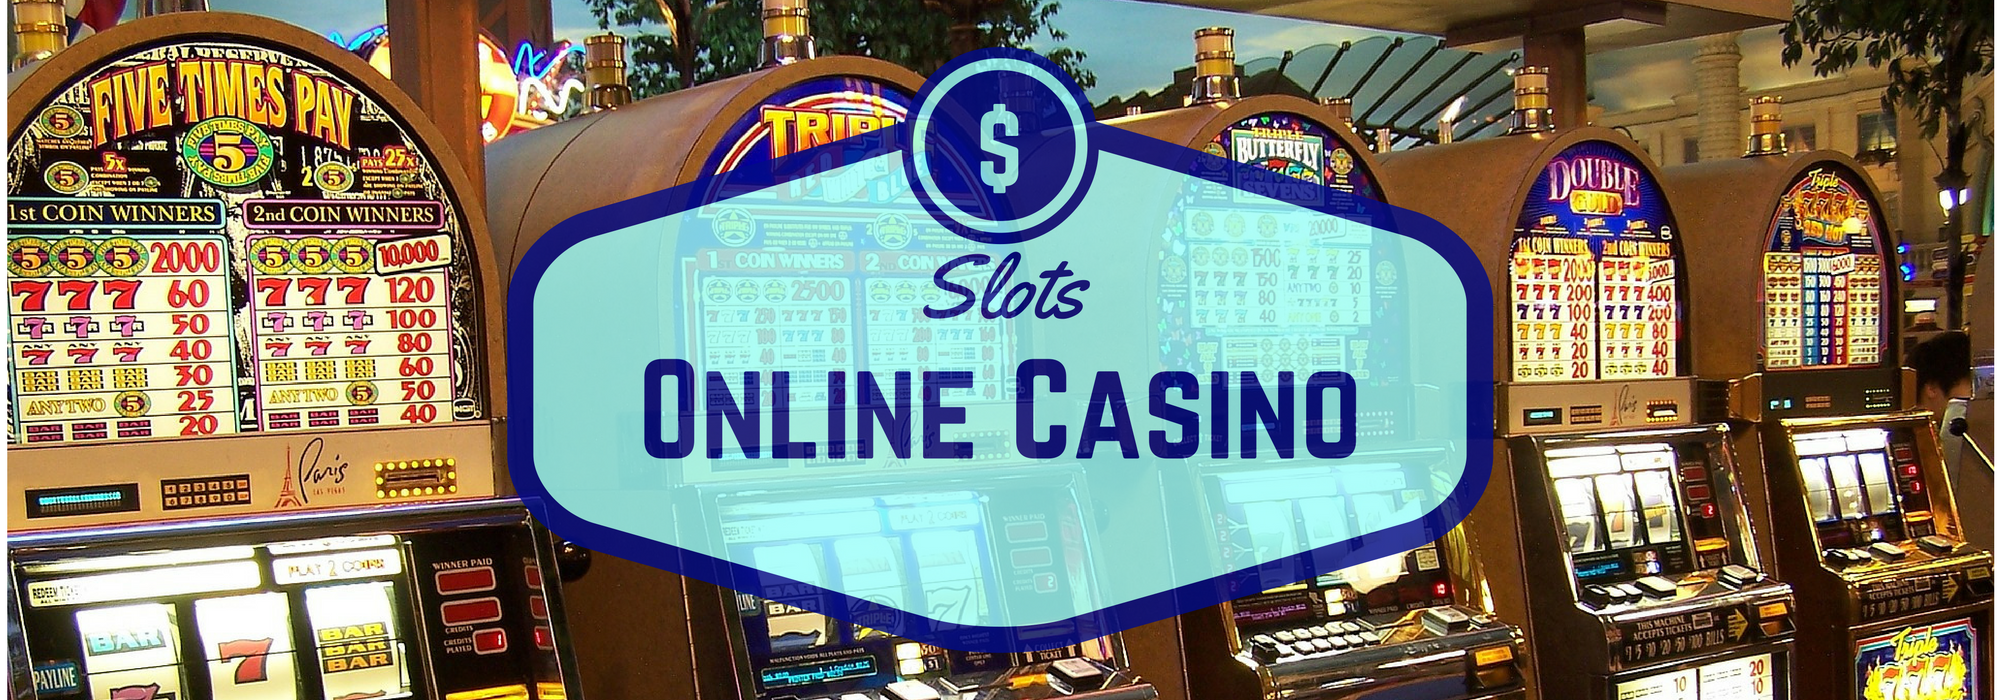 casino online for free casino slot online